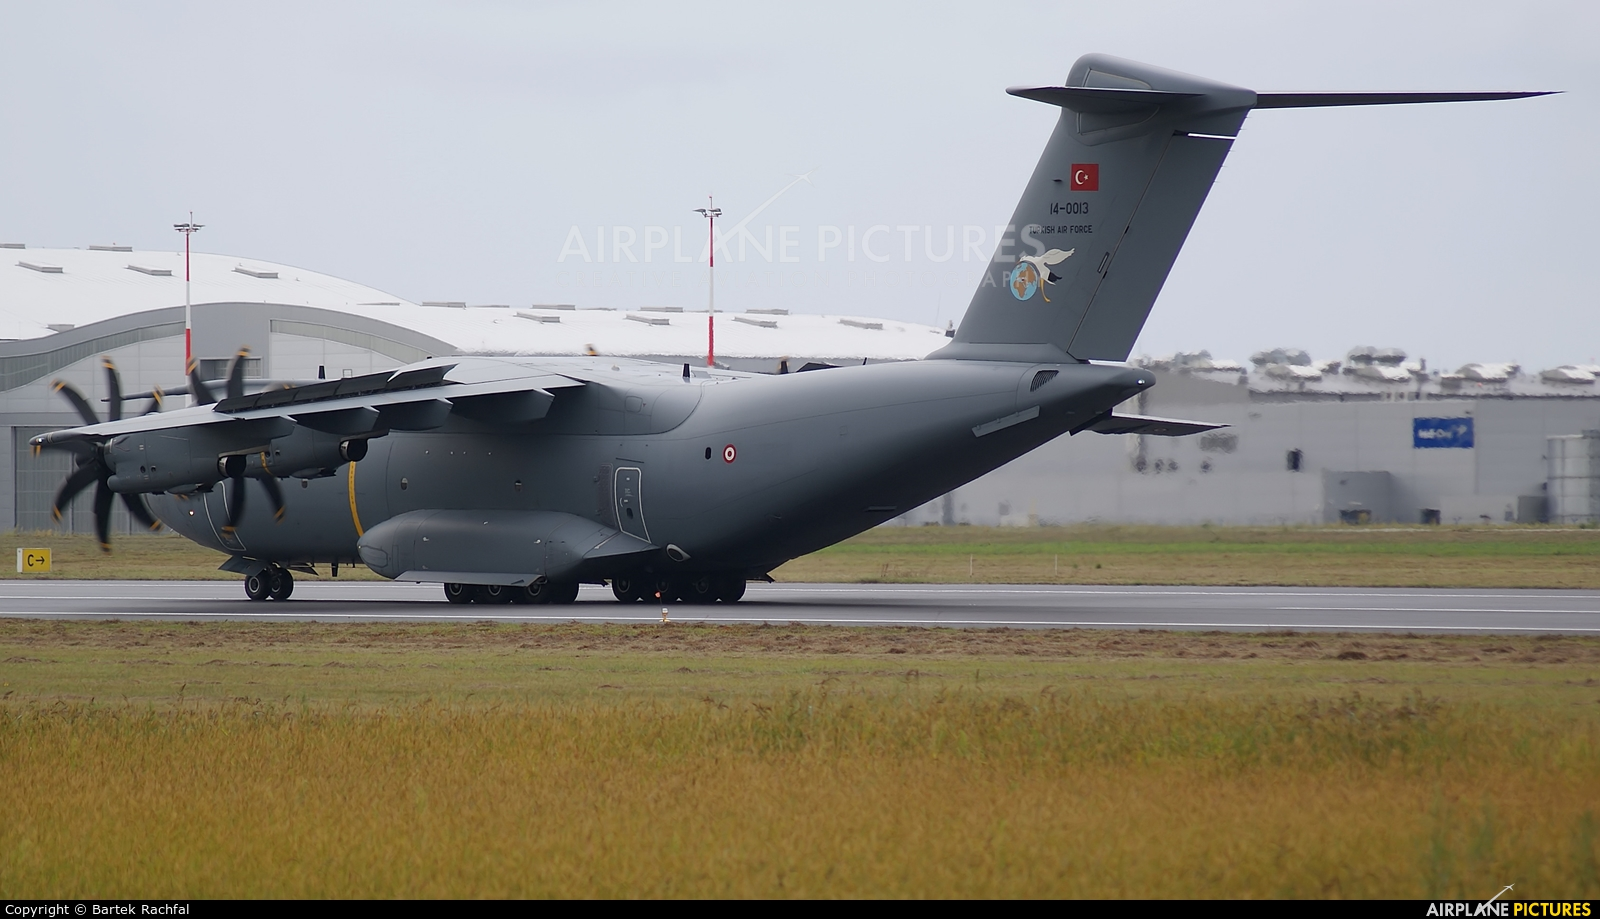 Turkey - Air Force 14-0013 aircraft at Rzeszów-Jasionka